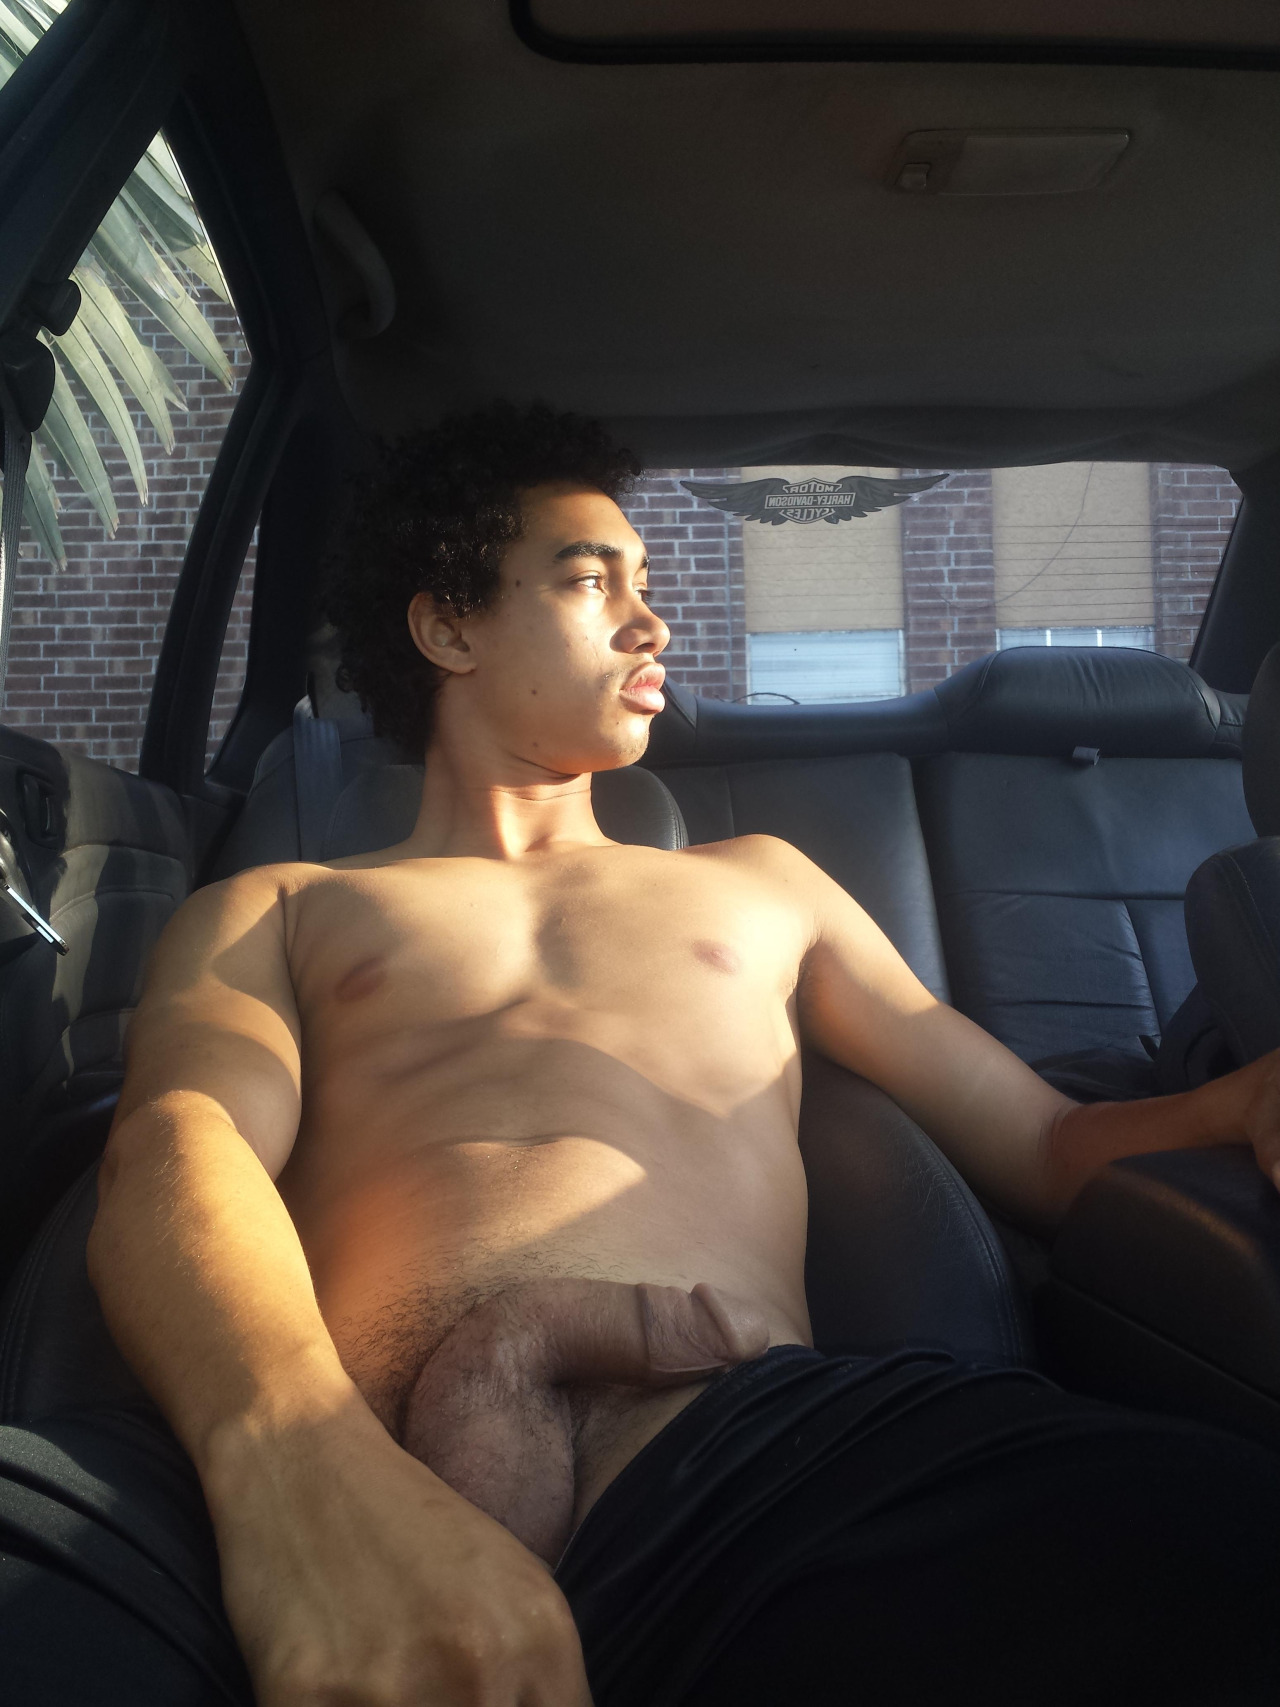 Bad Black Teen Boy (19) get's high and plays with Penis